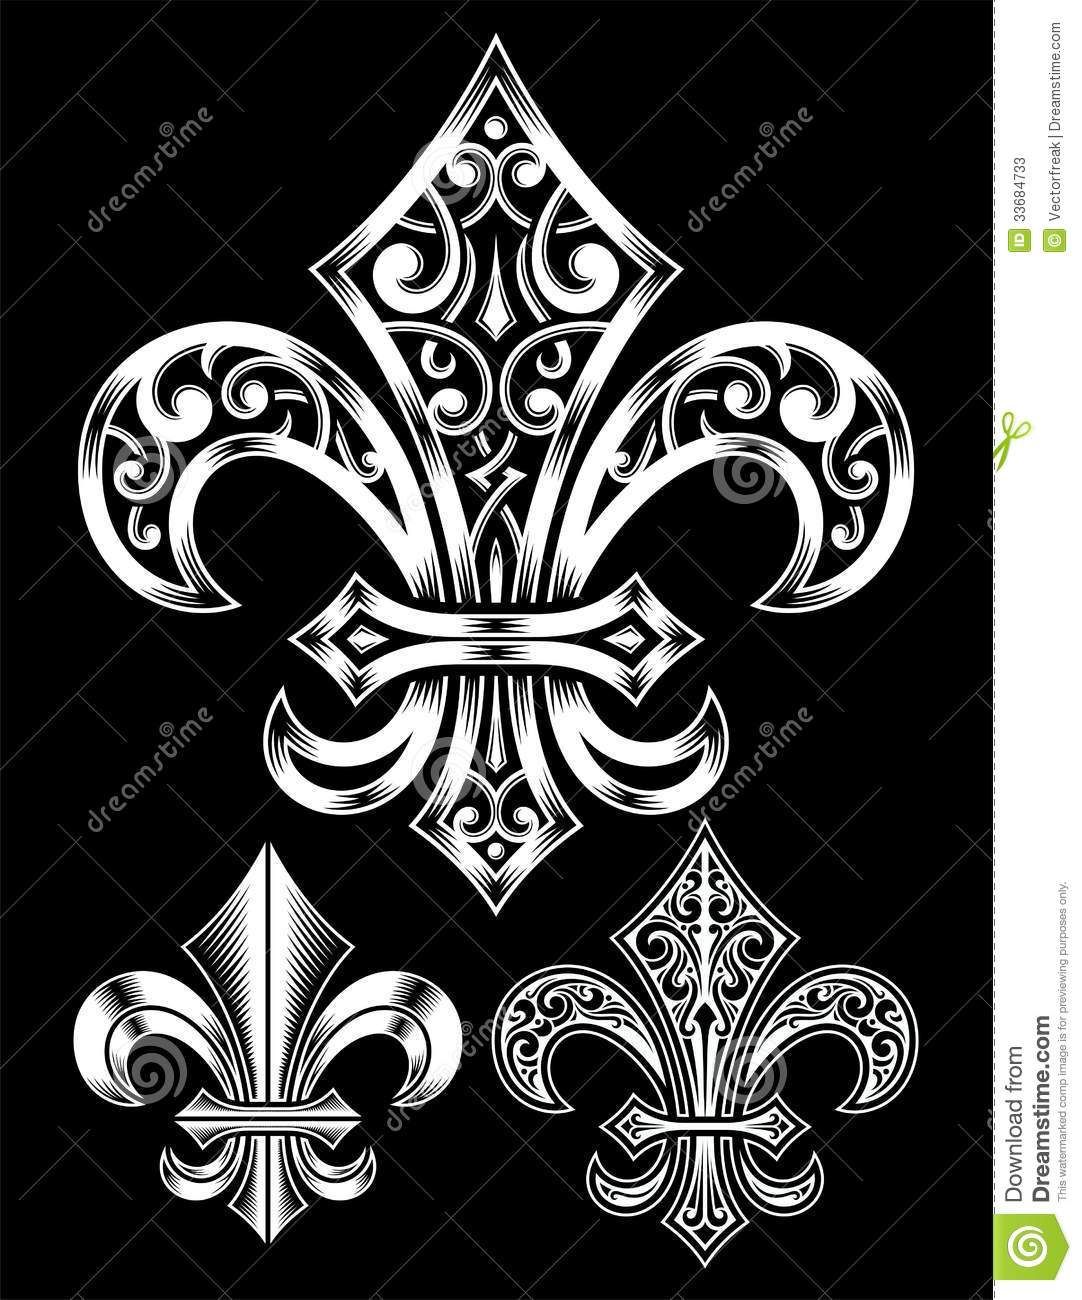 Ornate Fleur De Lis Vector Set Stock Photos - Image: 33684733